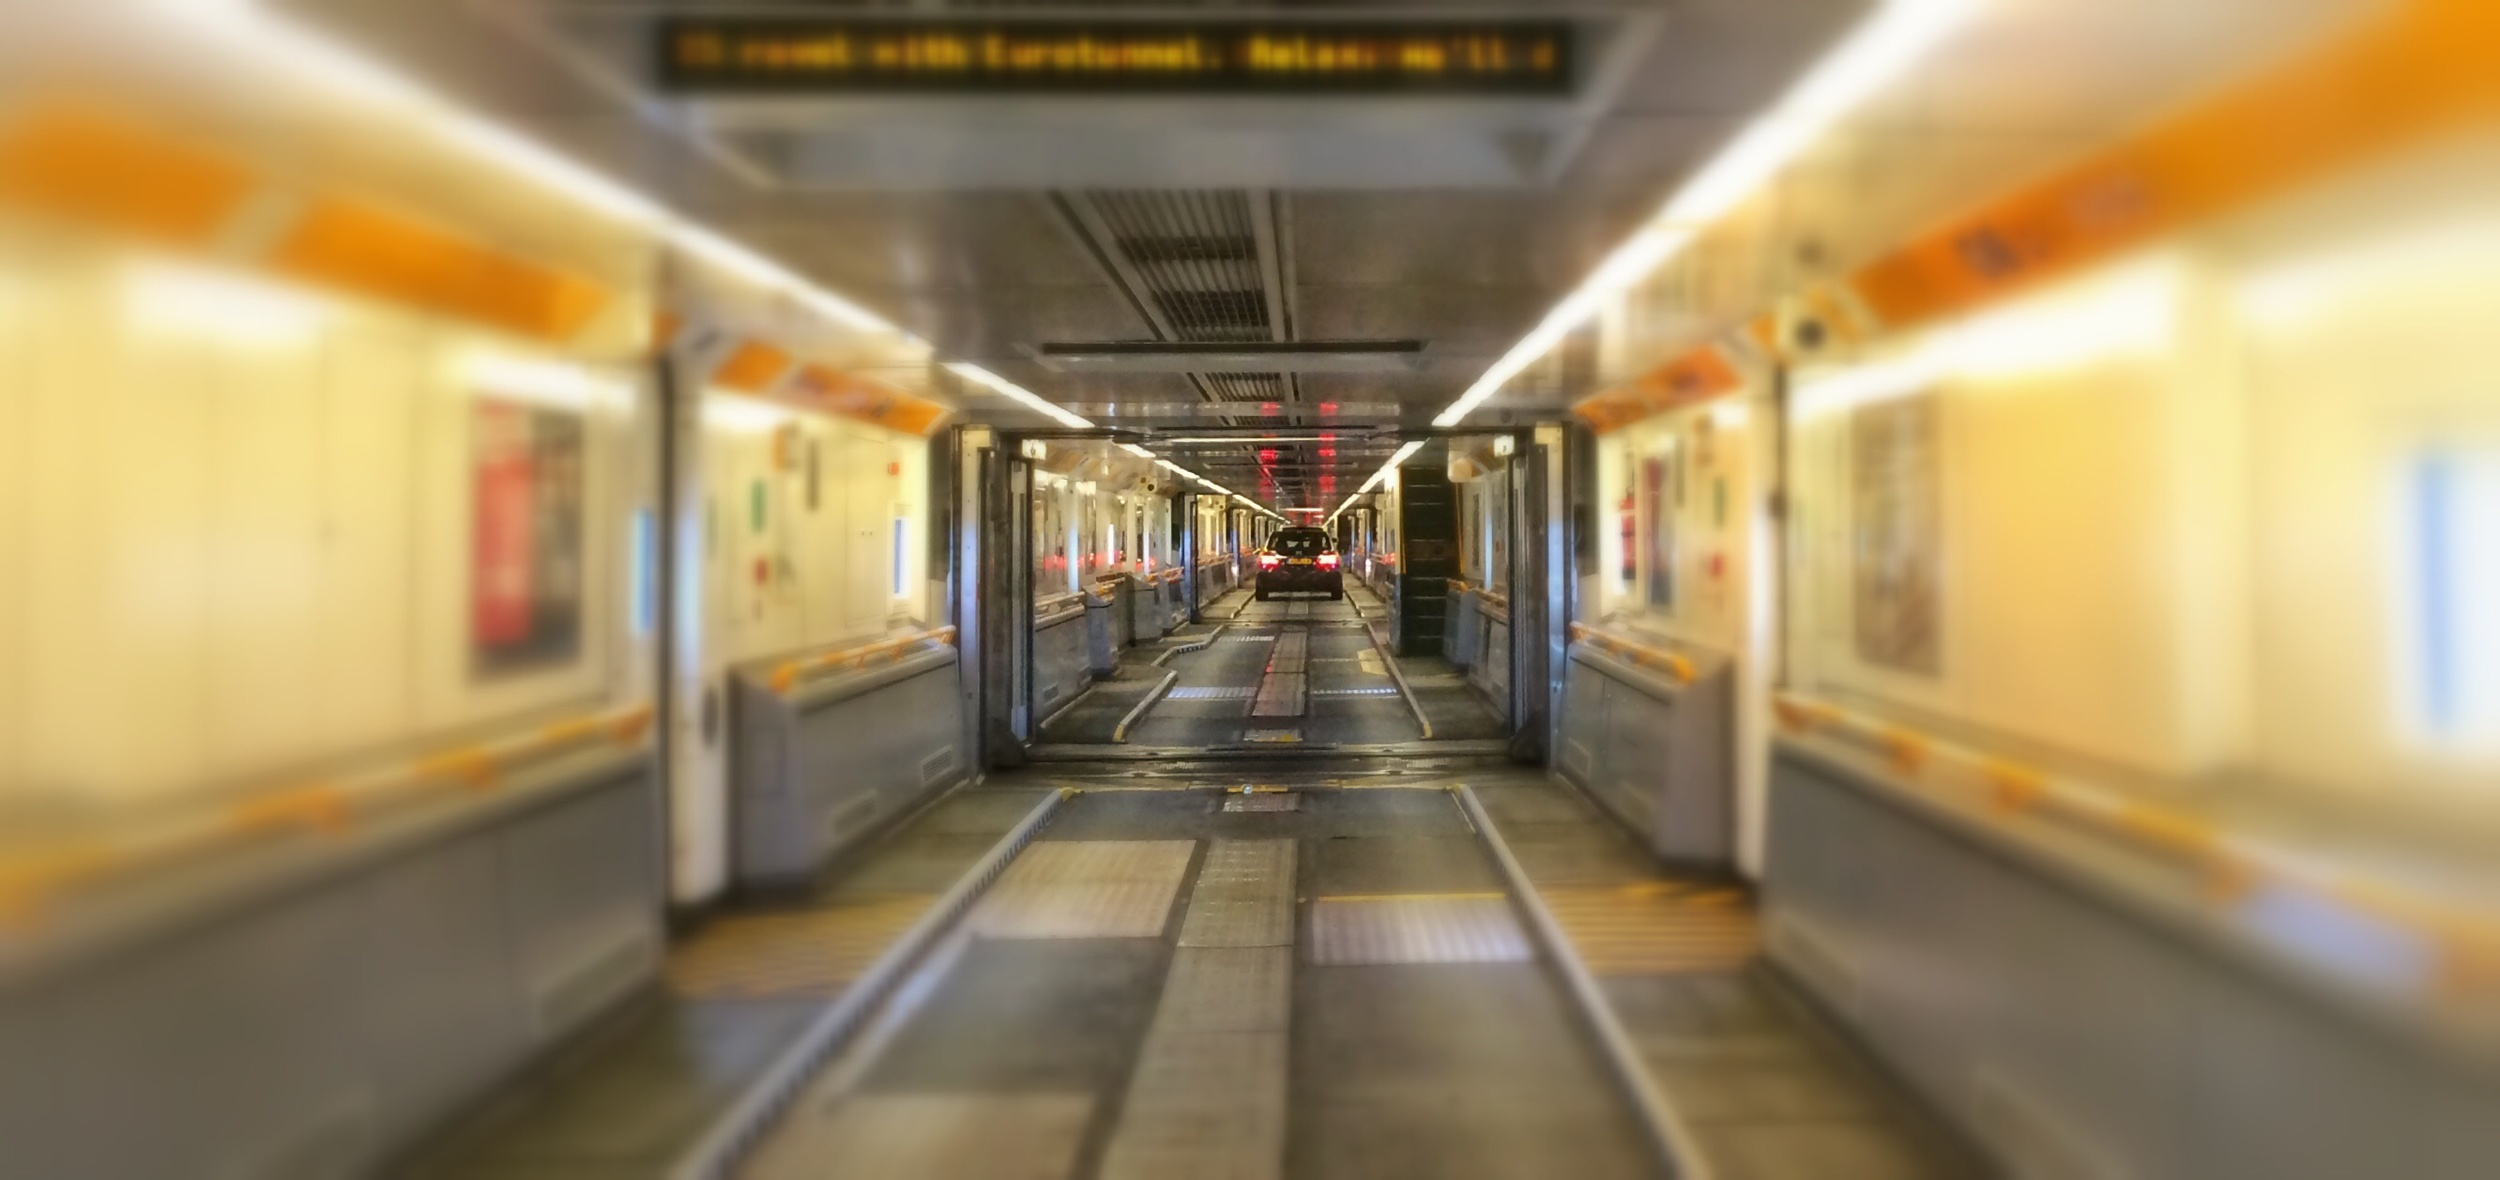 Inside the train in the tunnel - you want a hypersonic-mode to make everything go fast and blurry